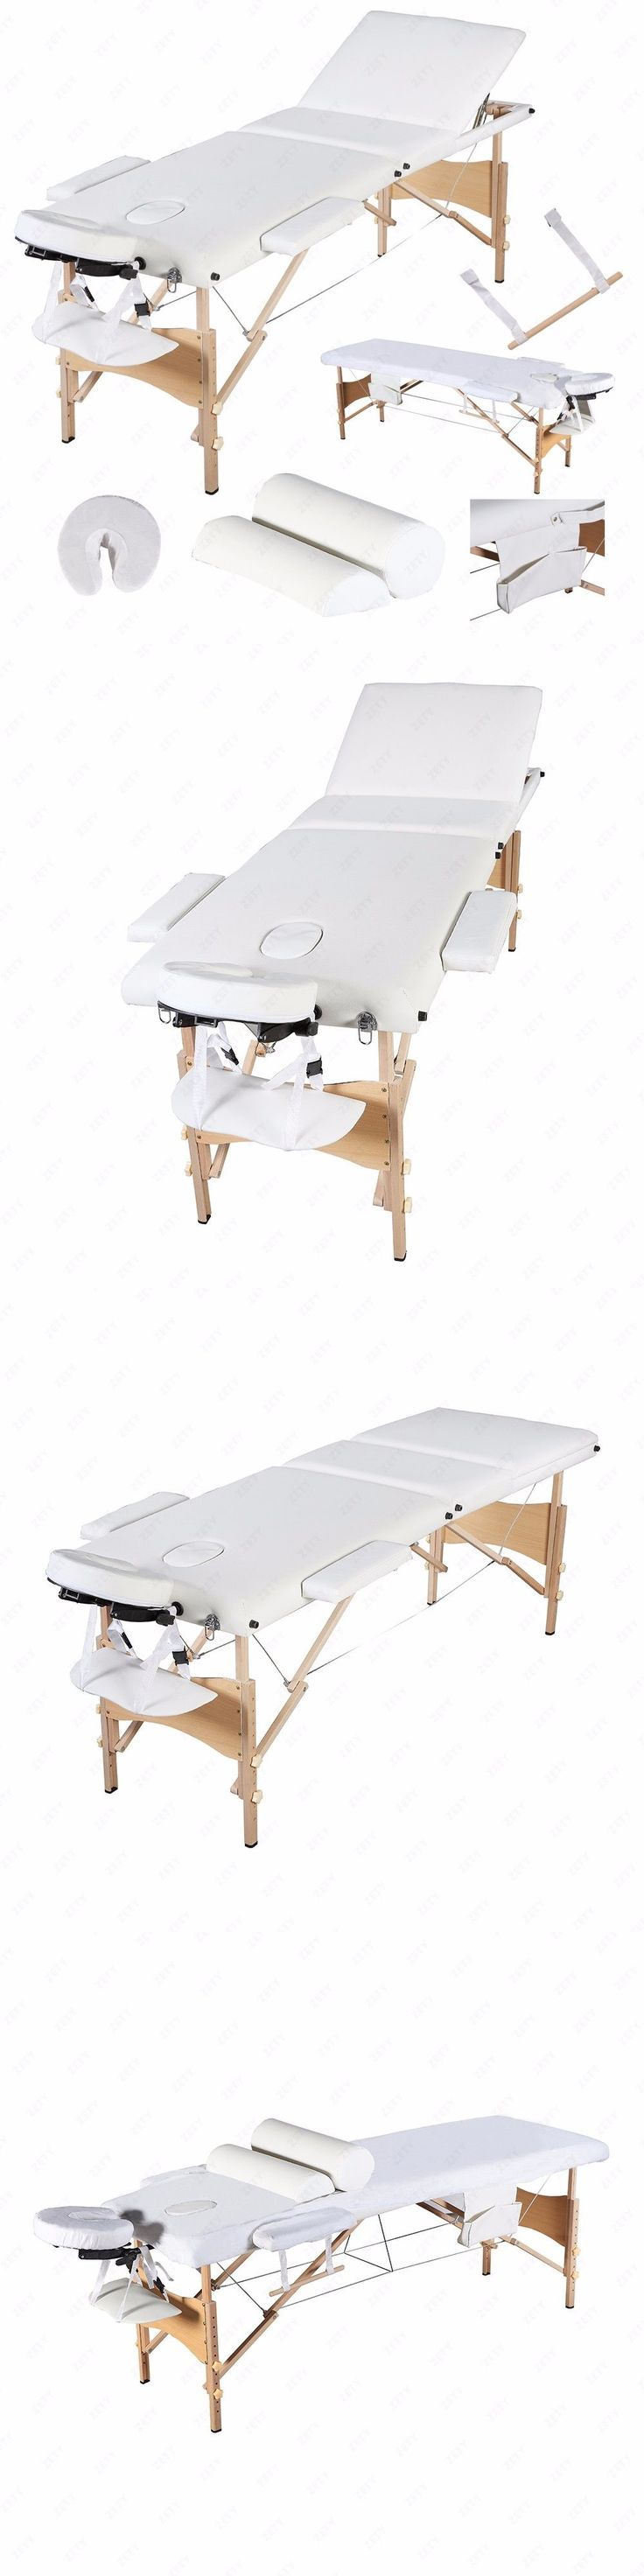 Massage Tables and Chairs: 3 Fold 84L Portable Massage Table Facial Spa Bed Sheet+2 Bolster+Cradle+Hanger BUY IT NOW ONLY: $187.9